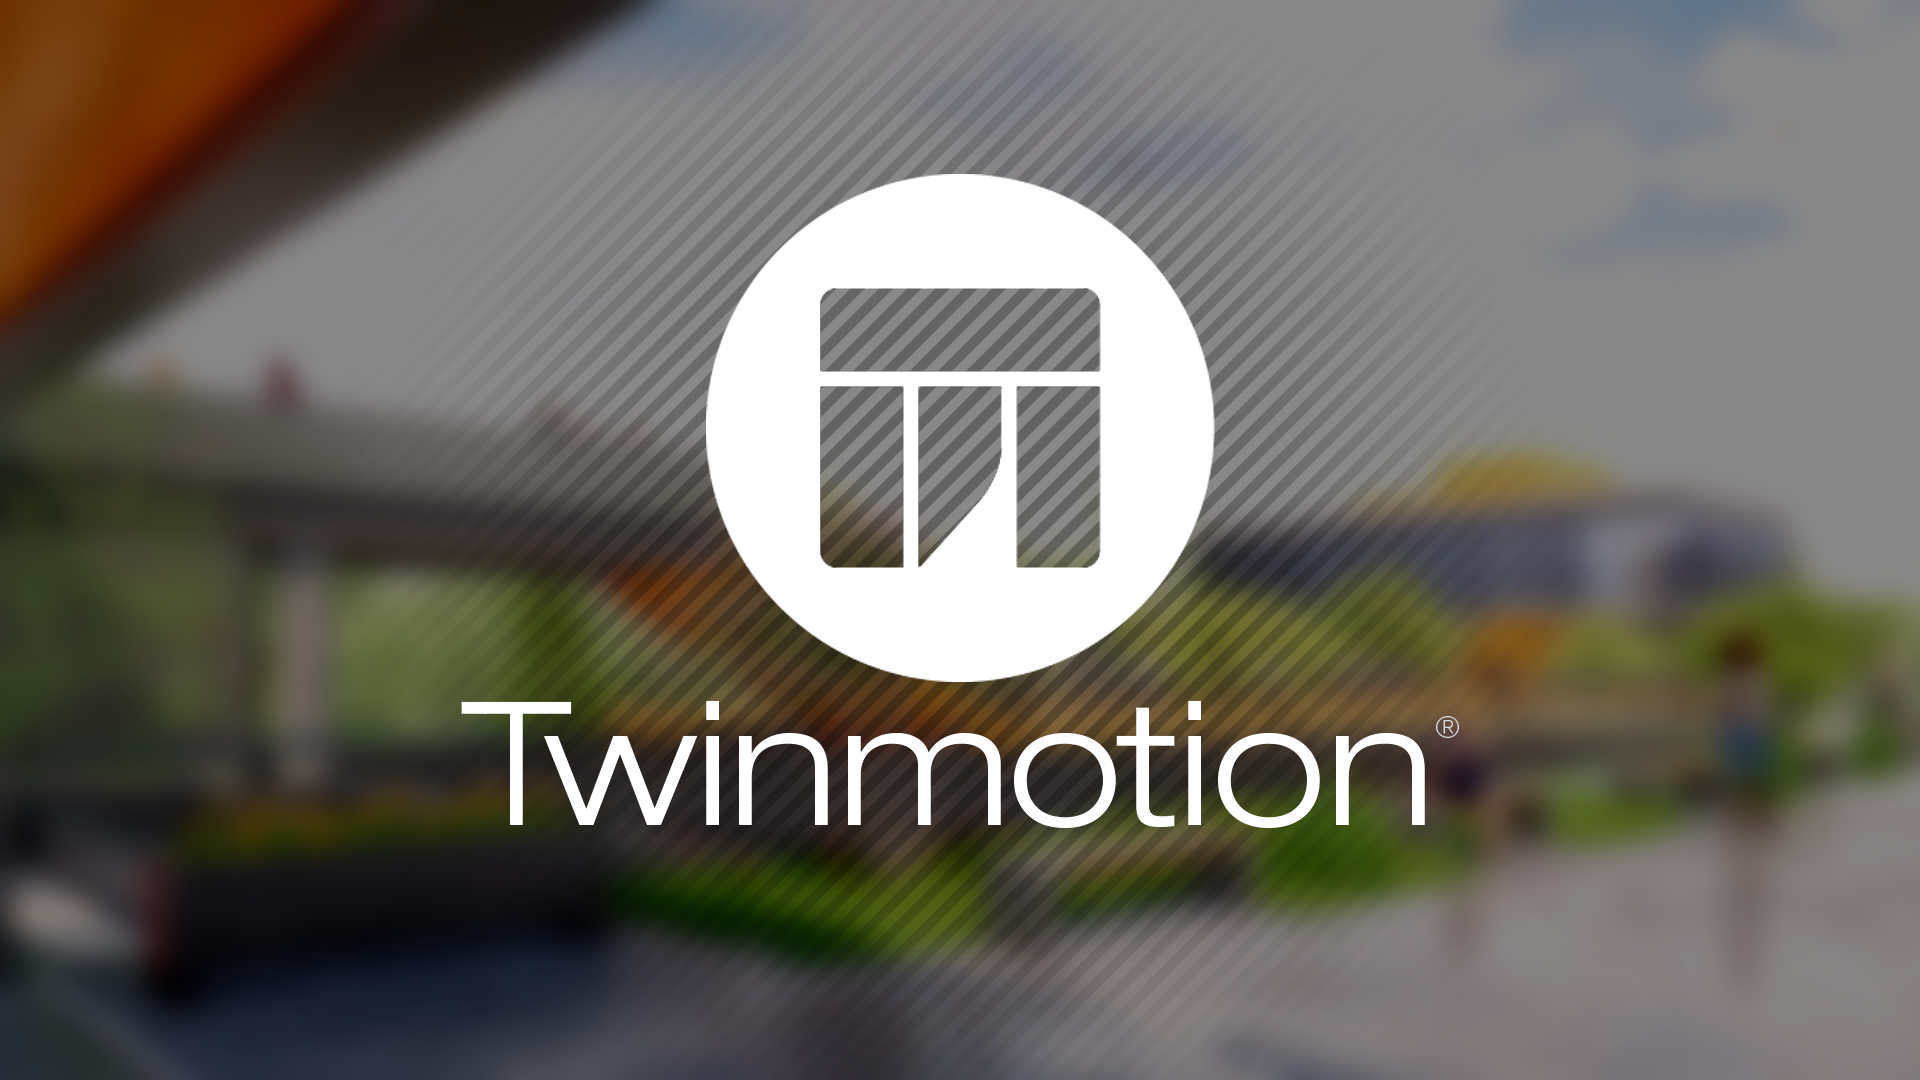 Twinmotion 2019.0.13088 Crack Download HERE !